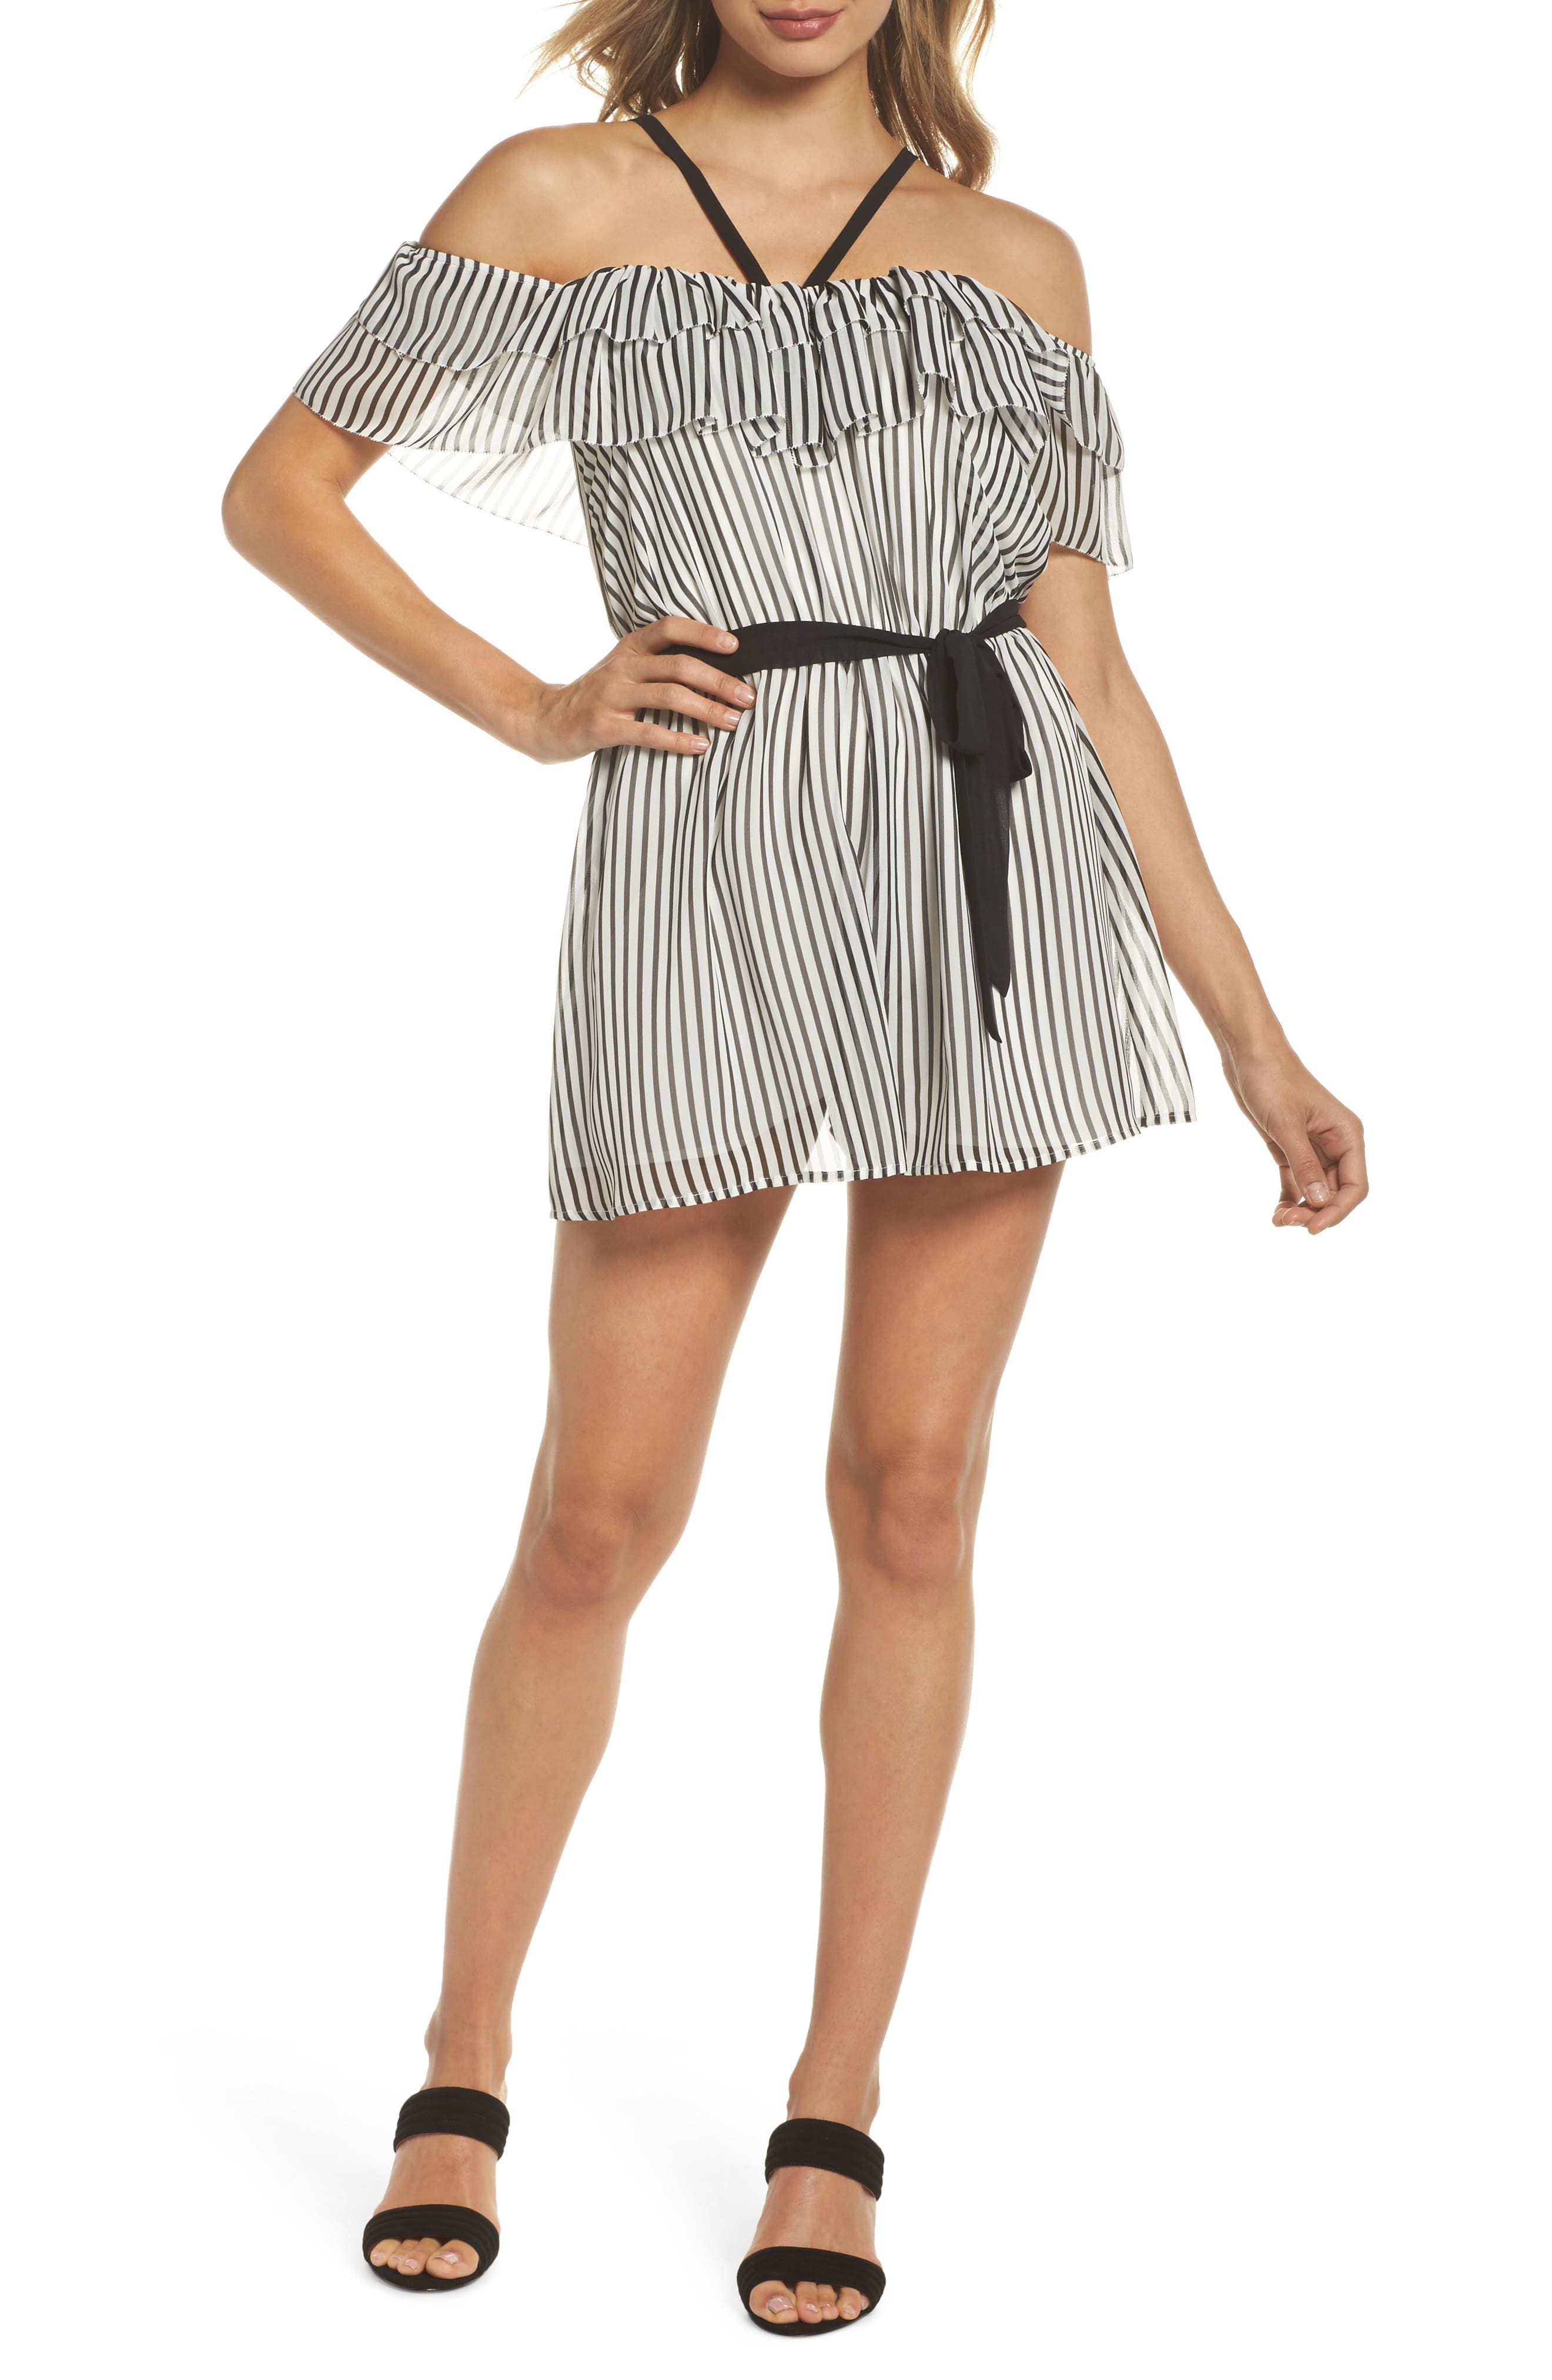 Toes in the Sand Romper,                             Main thumbnail 1, color,                             Black/ White Stripe